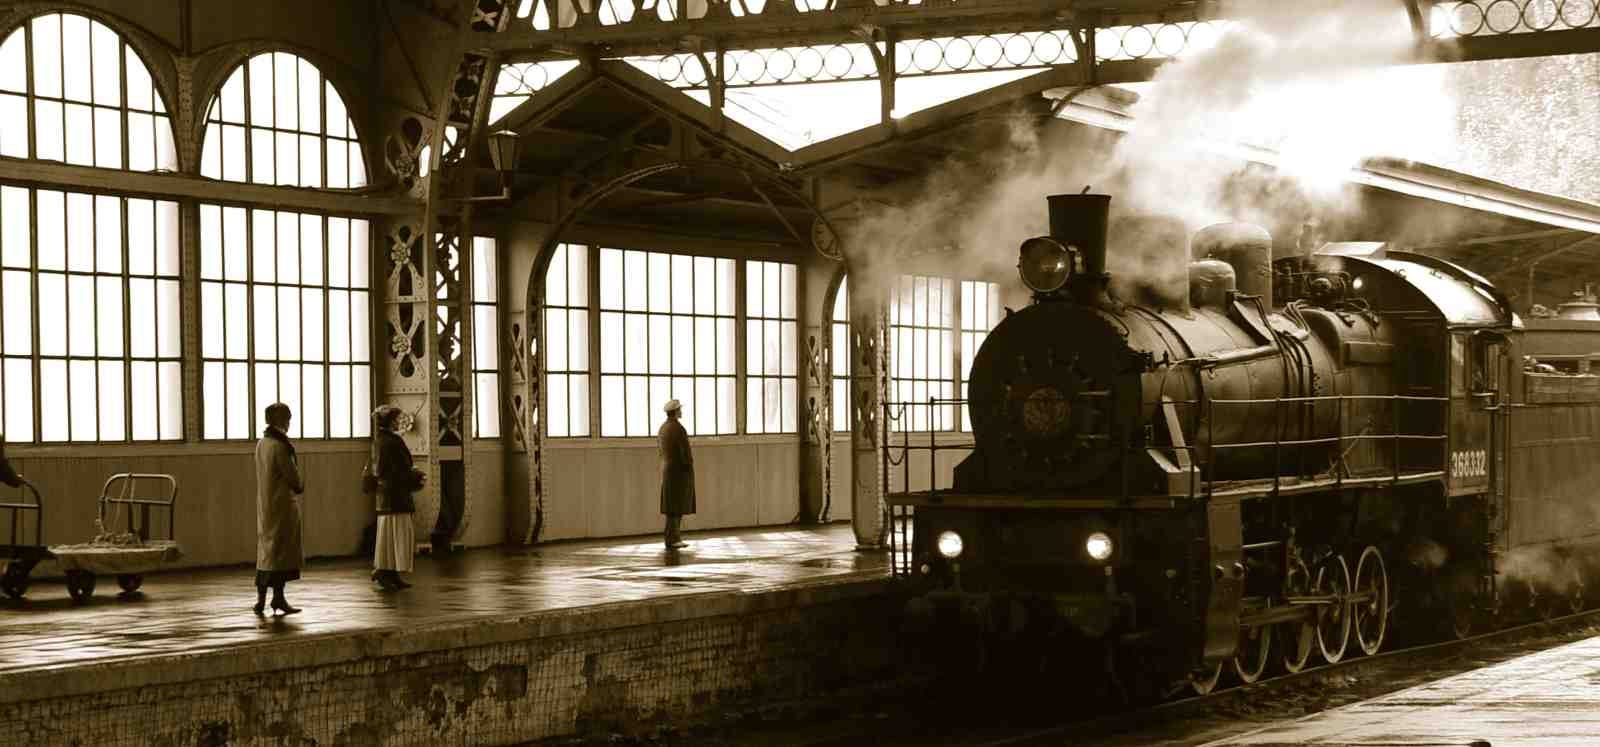 old steam engine train pulling into station